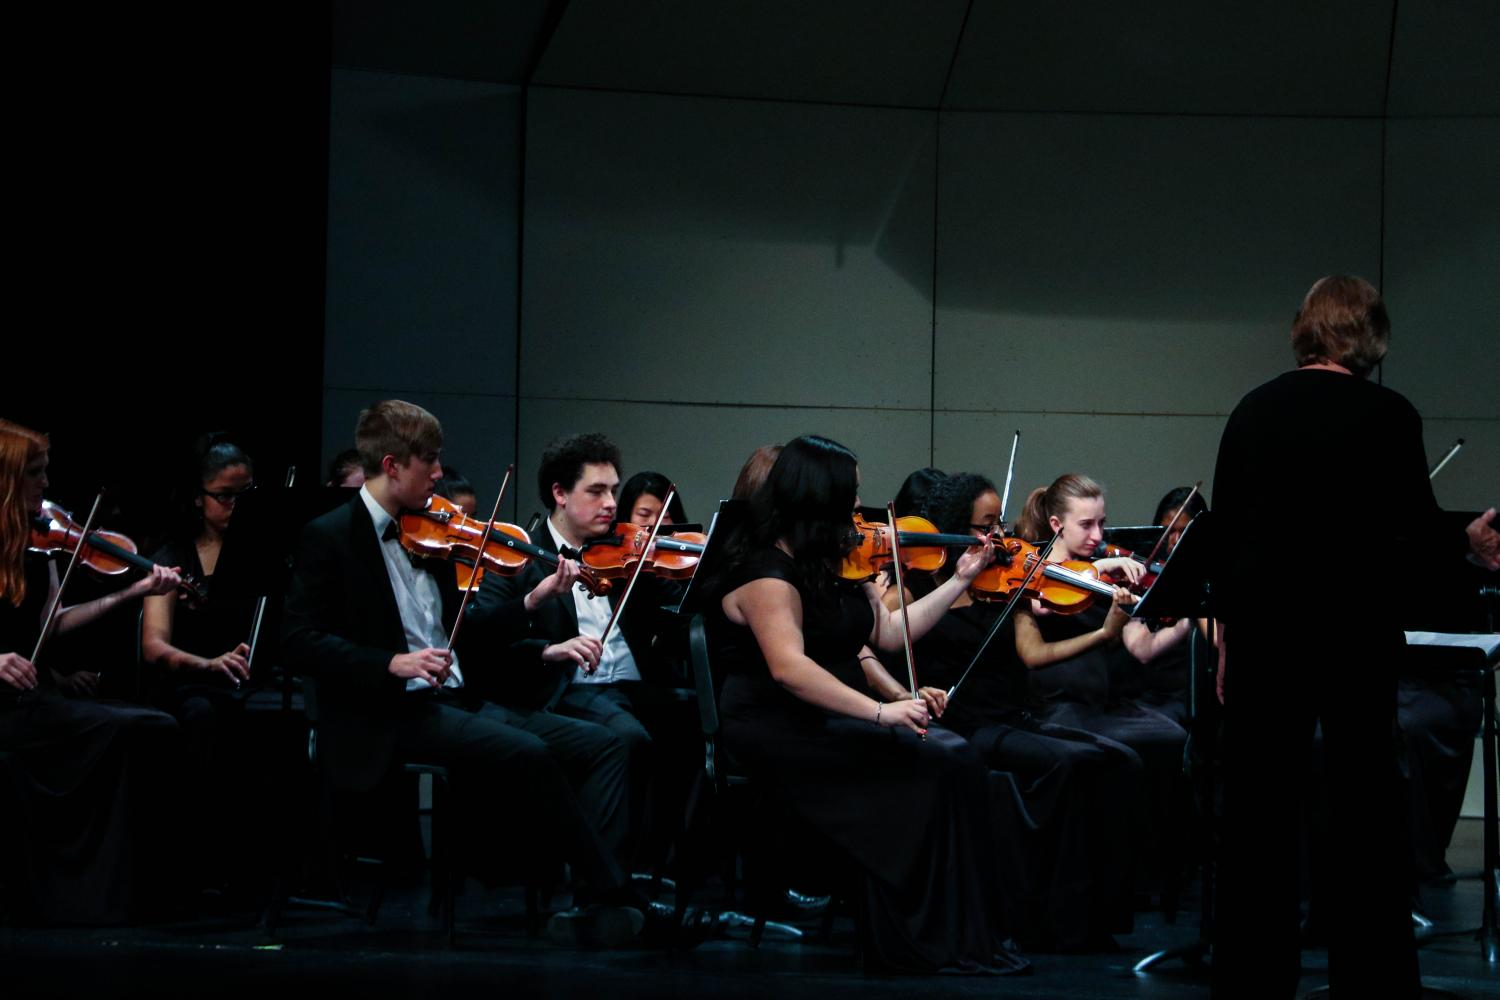 Concert Orchestra concentrates on their performance.